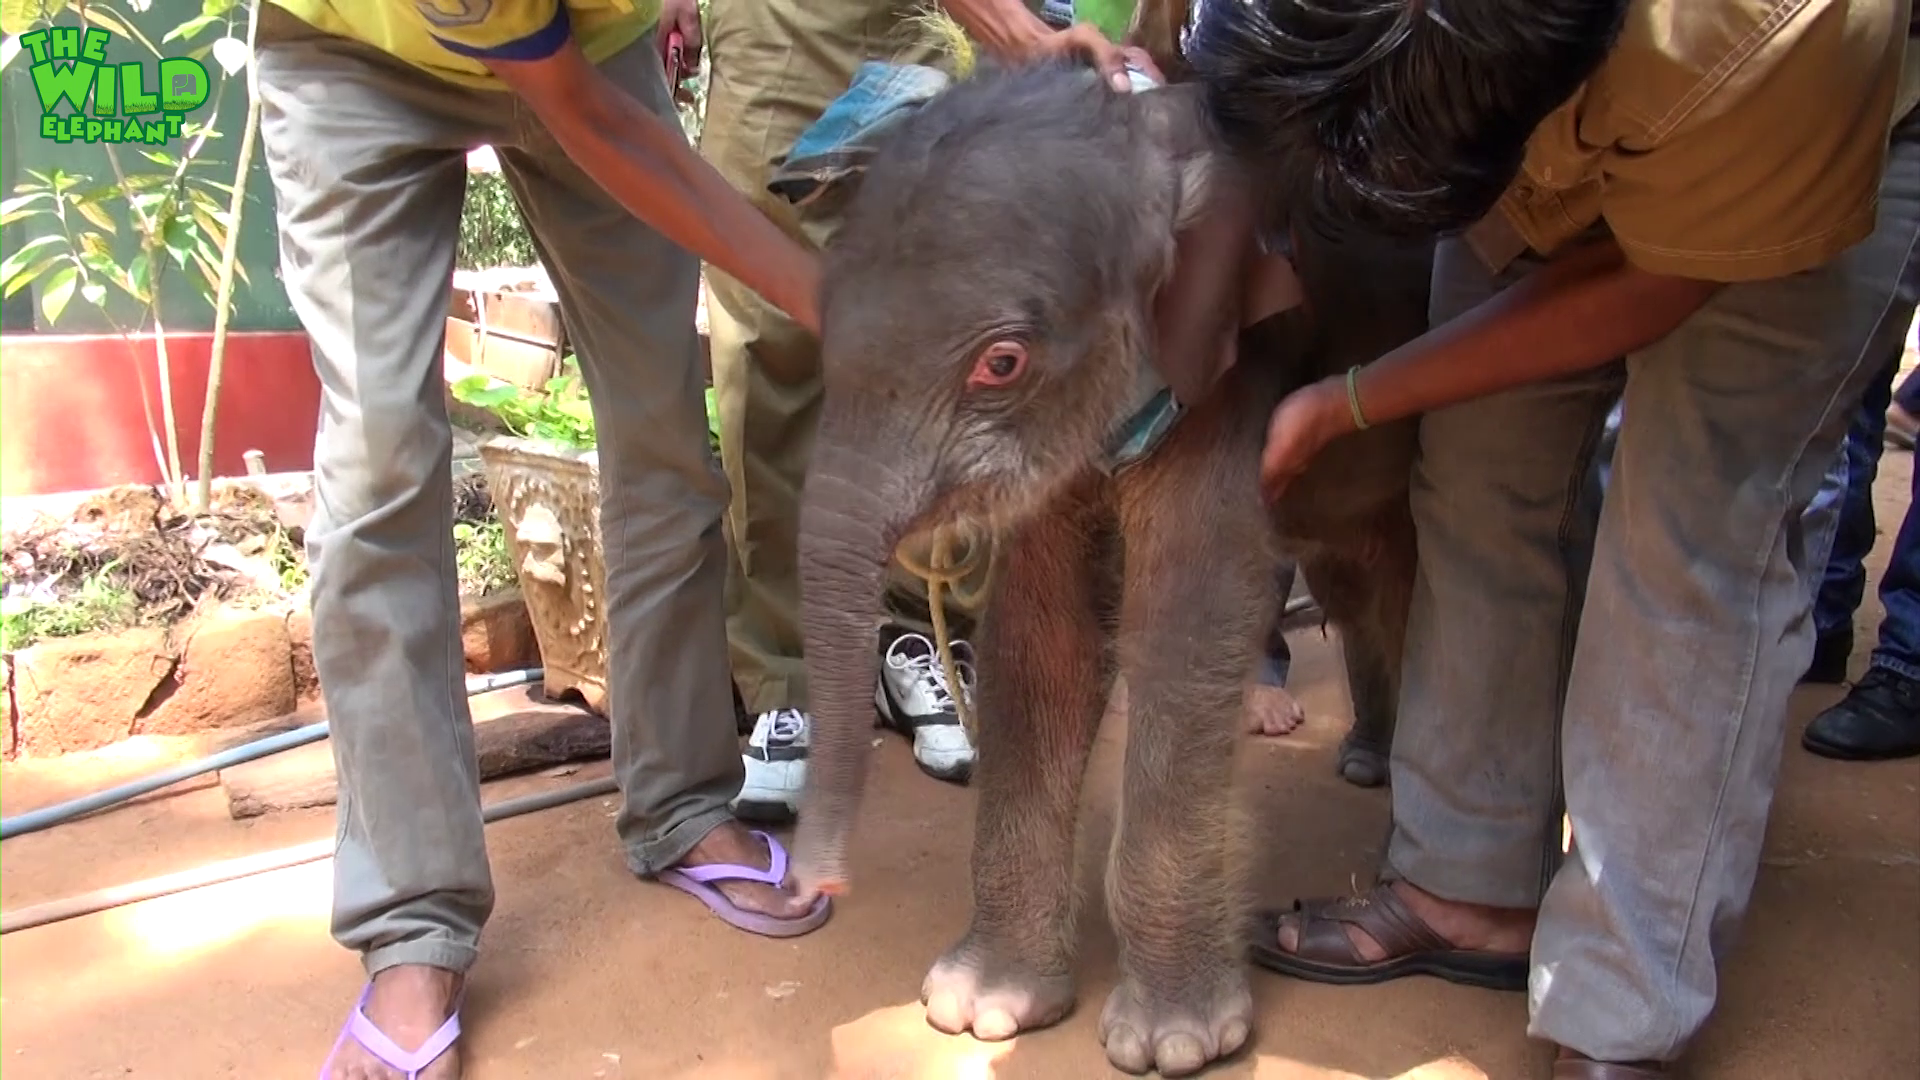 Wildlife team feeds little elephant with milk and also gets treated